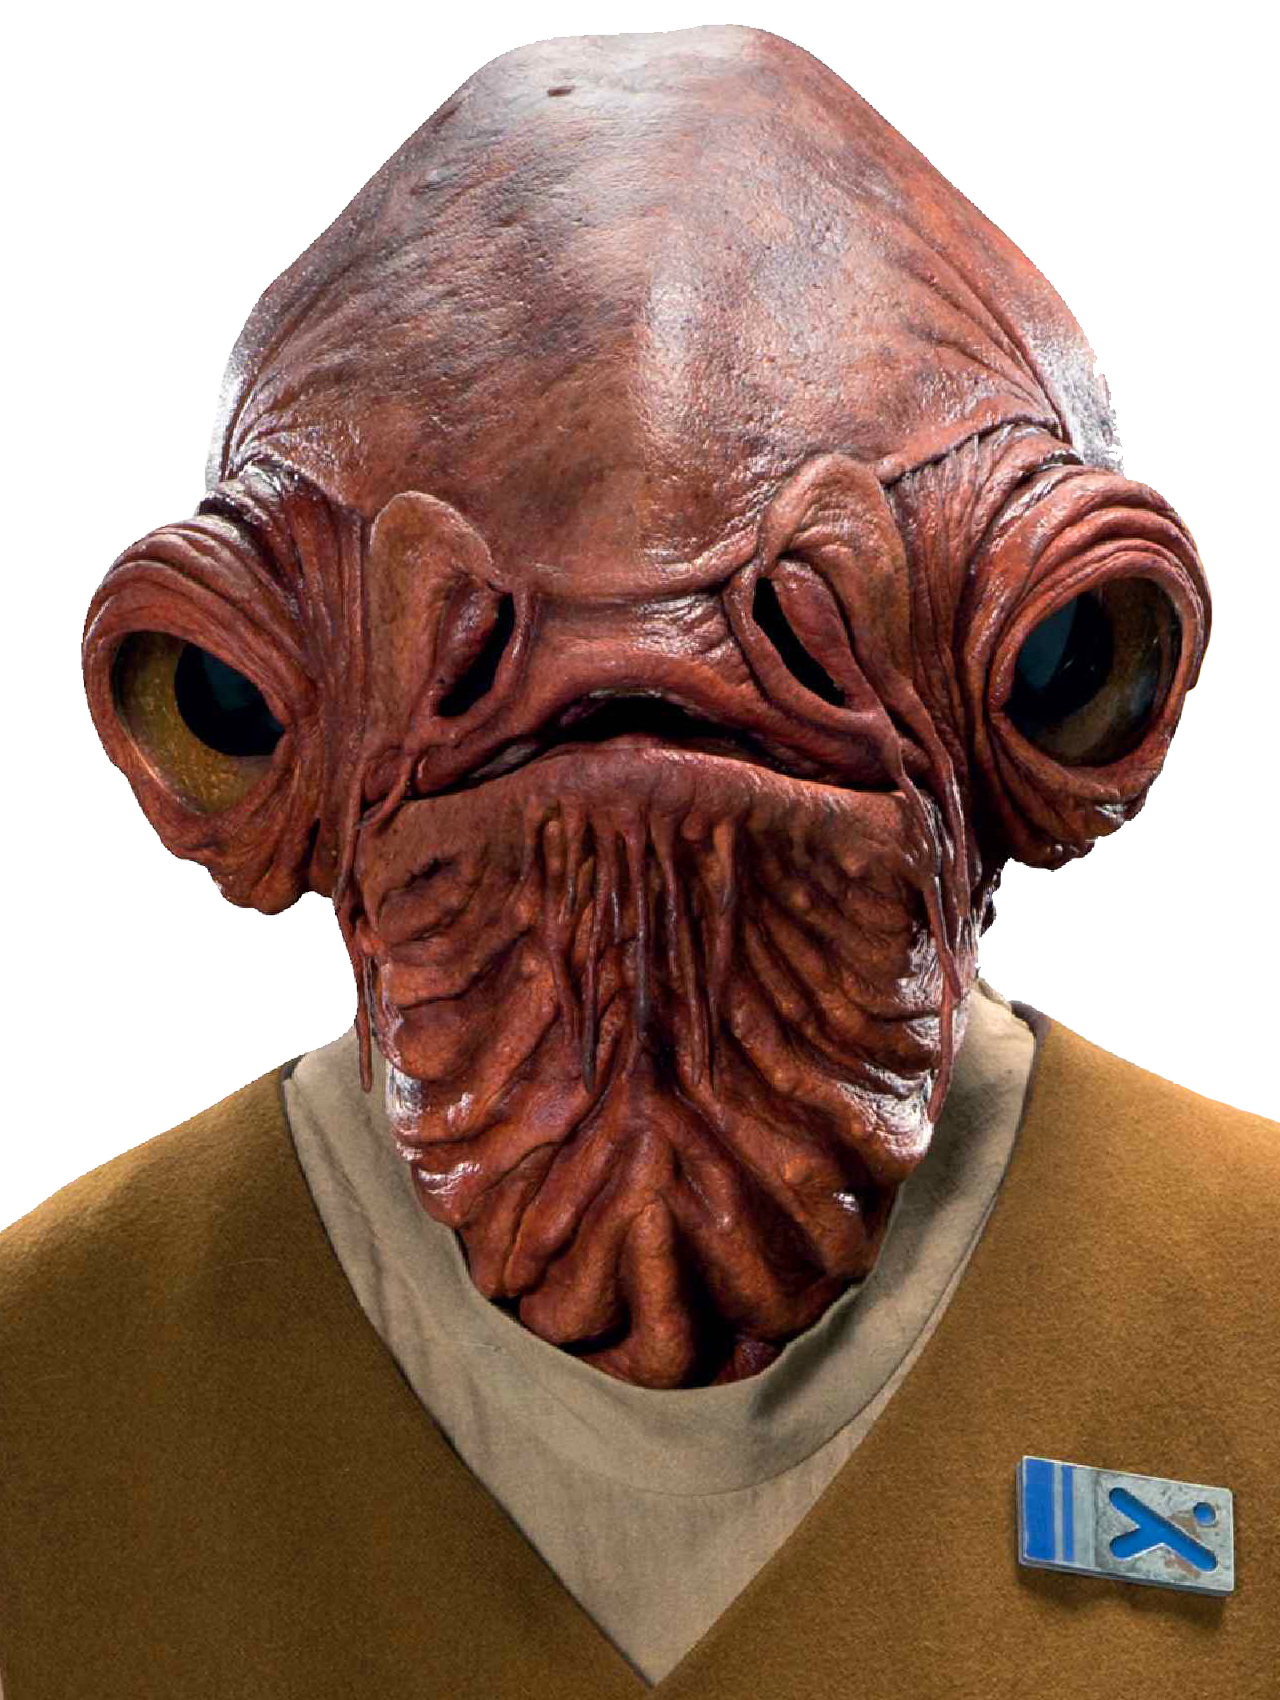 Gial Ackbar Star Wars Characters Pictures Star Wars Artwork Star Wars Images